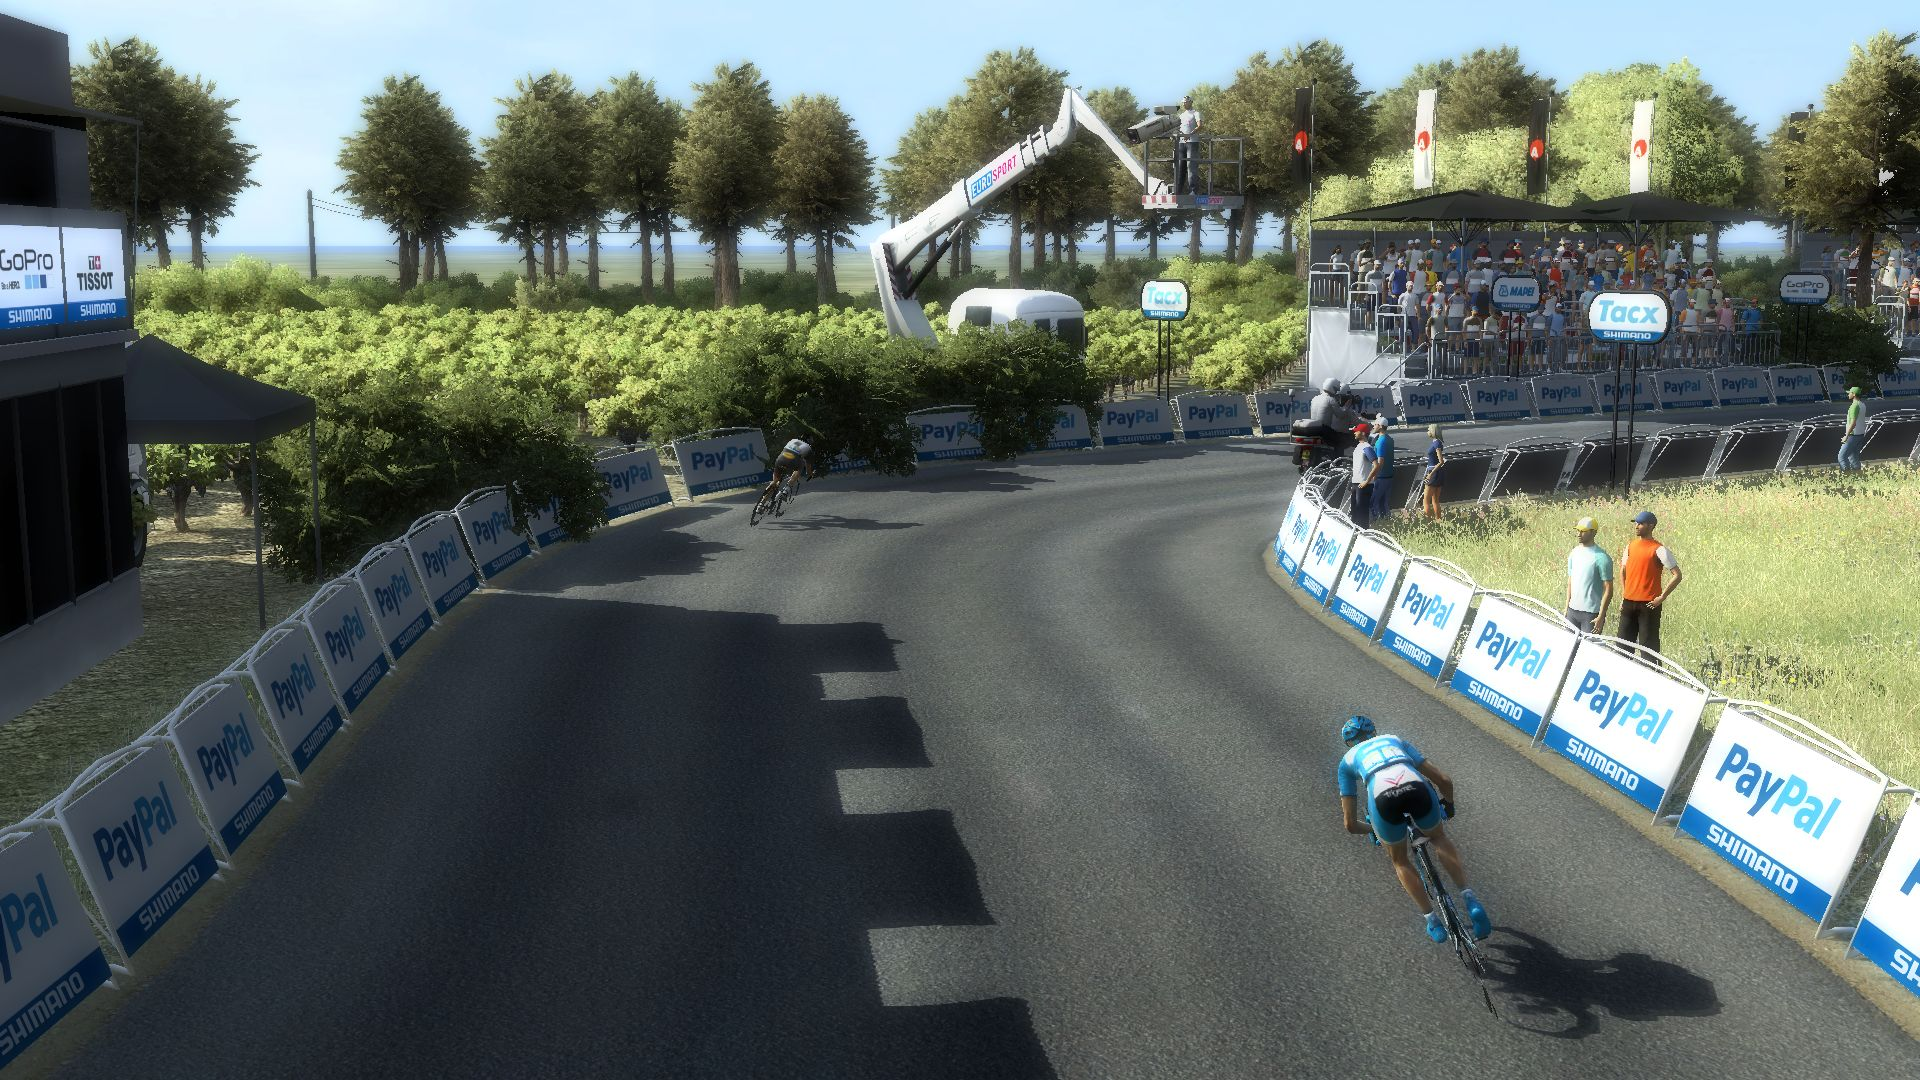 pcmdaily.com/images/mg/2017/Races/NC/GBR/GBR RR 6.jpg